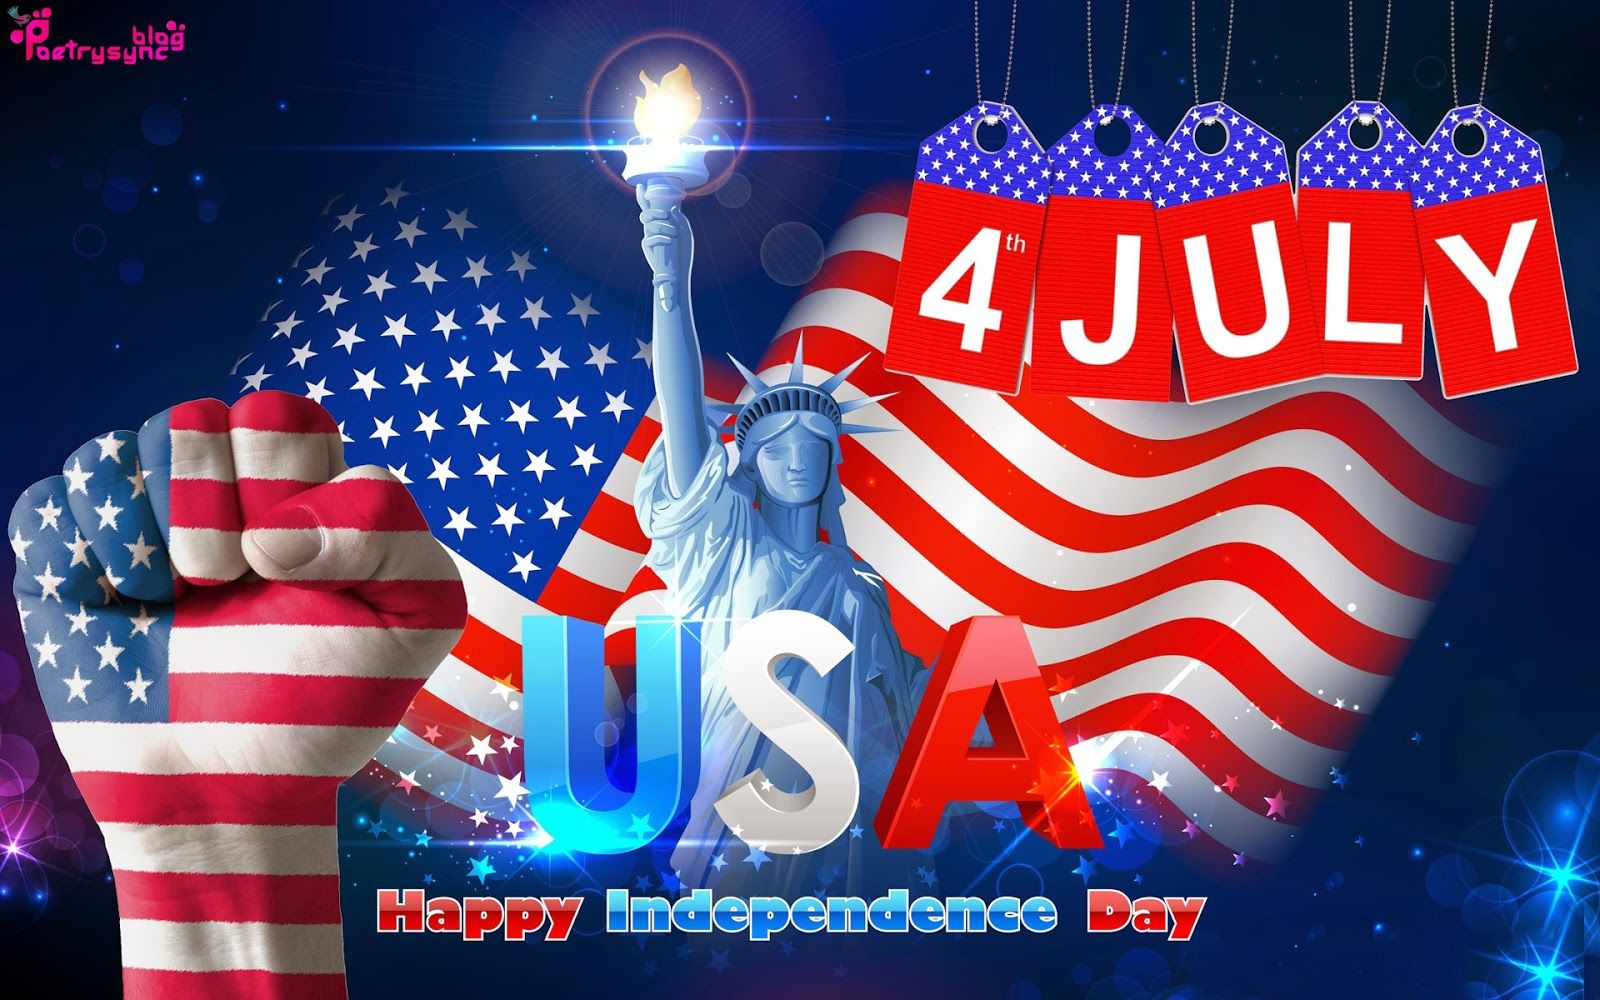 USA Happy Independence Day Images